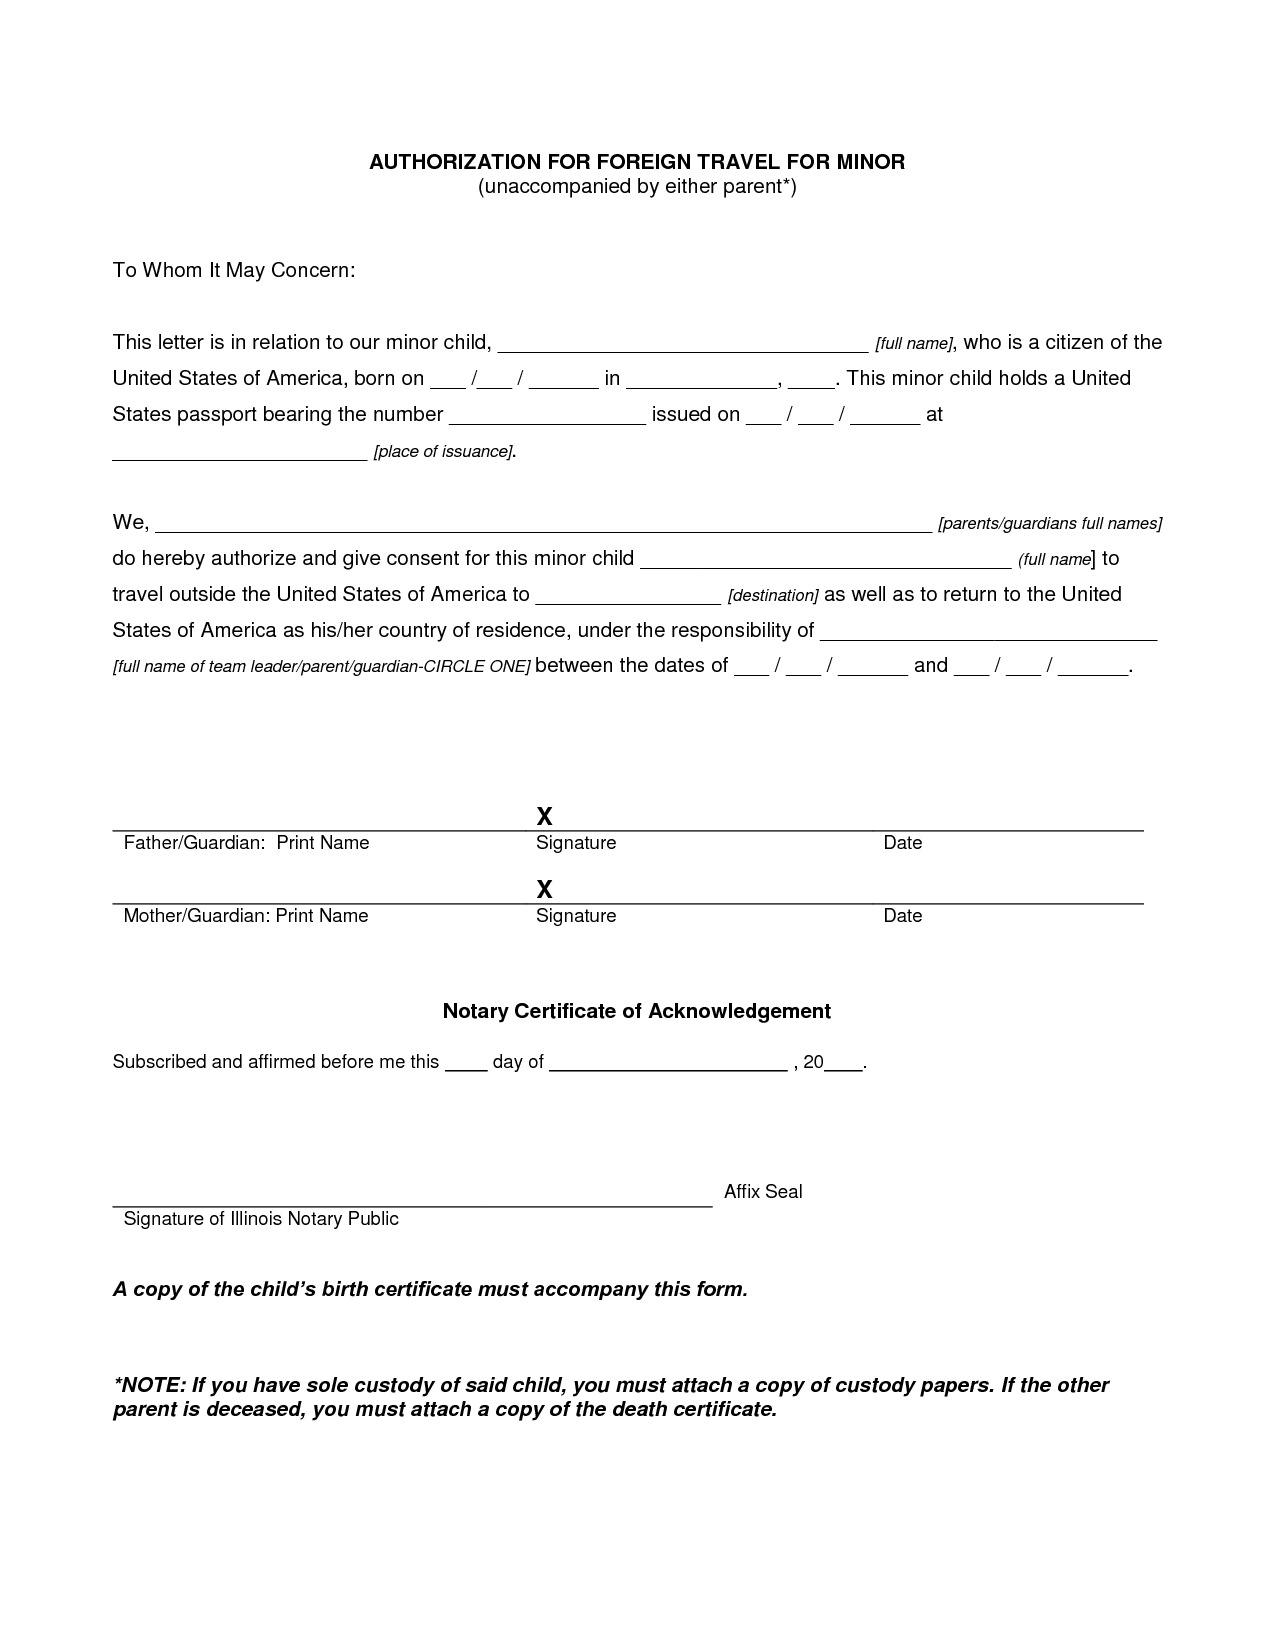 Child care authorization form letter with sample child care child care authorization form letter with sample child care authorization form pinterest form letter and child altavistaventures Choice Image